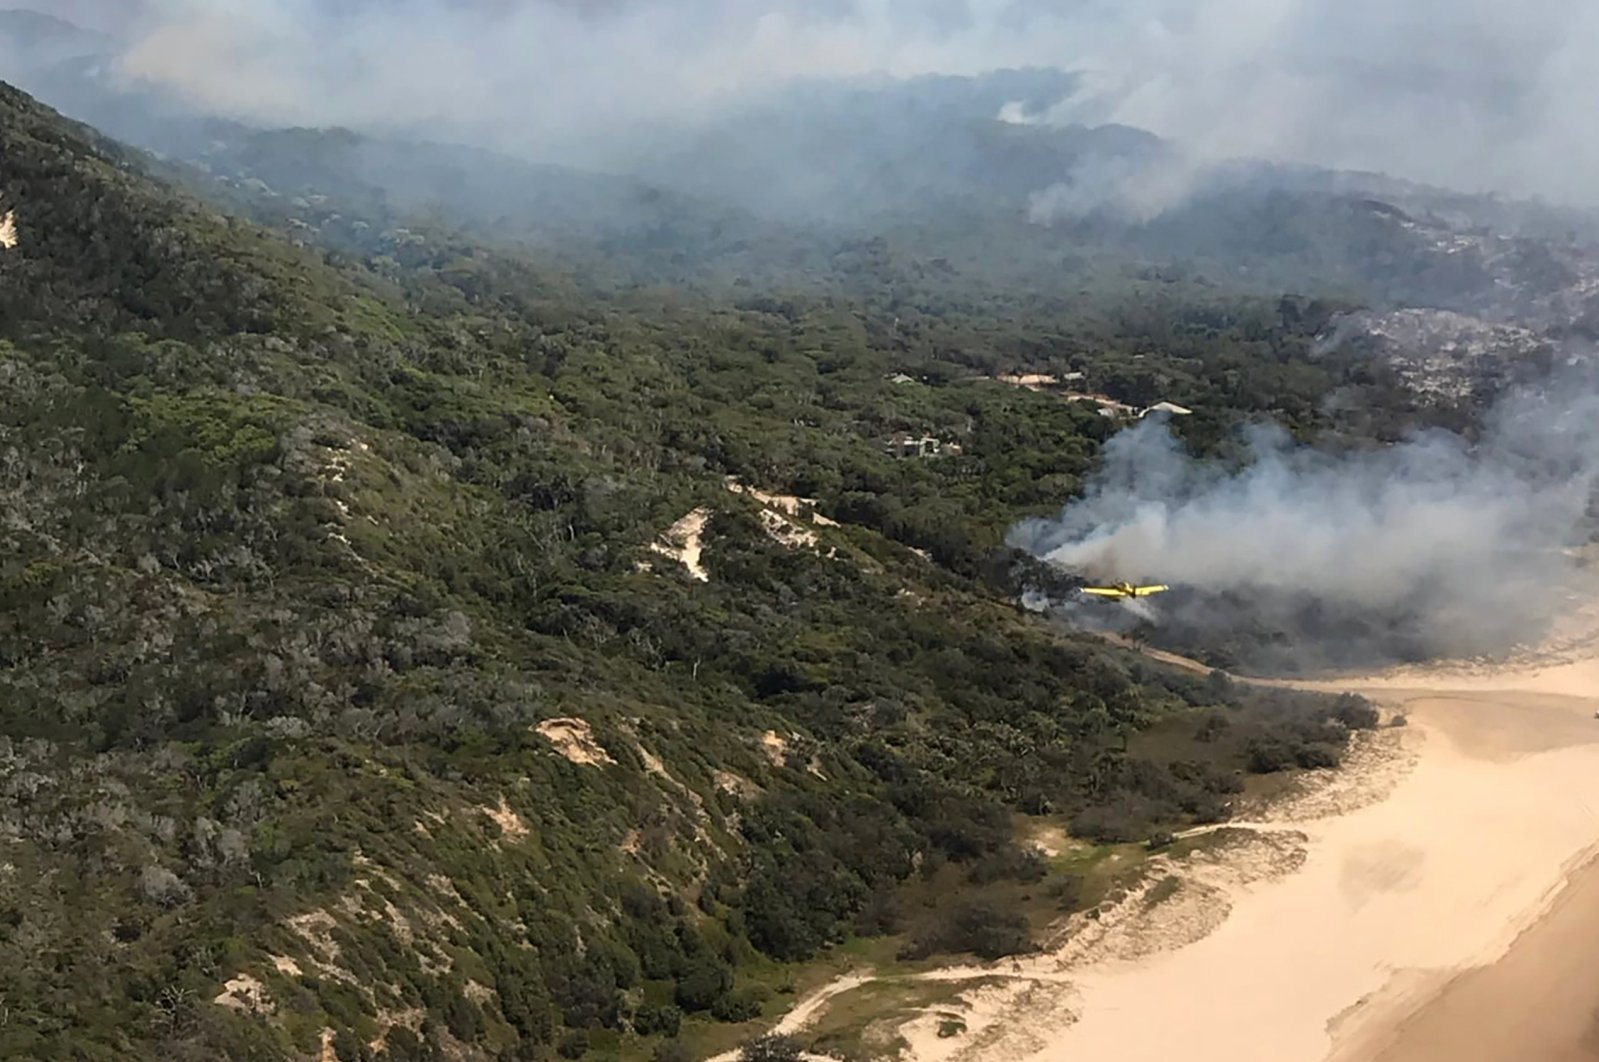 Smoke blows over hills and toward the ocean at Fraser Island, Australia, Dec. 2, 2020. (Queensland Fire and Emergency Services via AP)